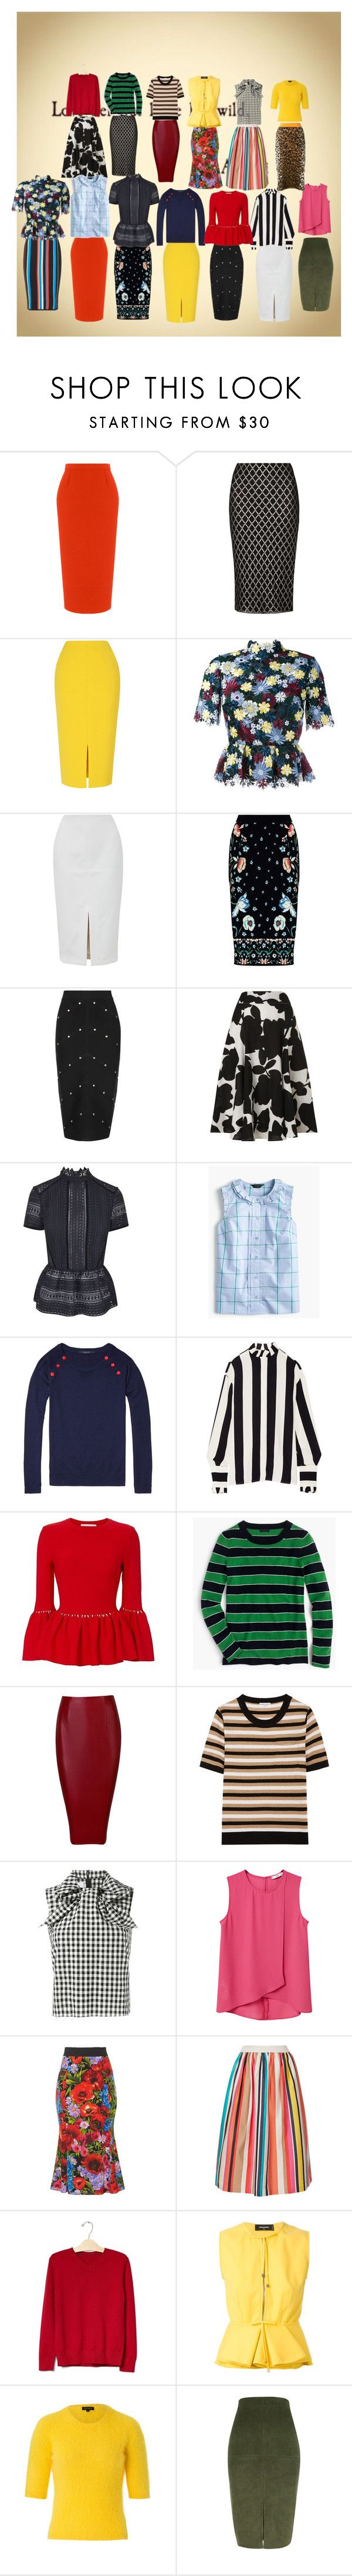 """""""The Office Hit List"""" by xkaboq on Polyvore featuring Roland Mouret, Dorothy Perkins, Versace, Erdem, Ted Baker, Fenn Wright Manson, Topshop, Phase Eight, Perseverance London and J.Crew"""